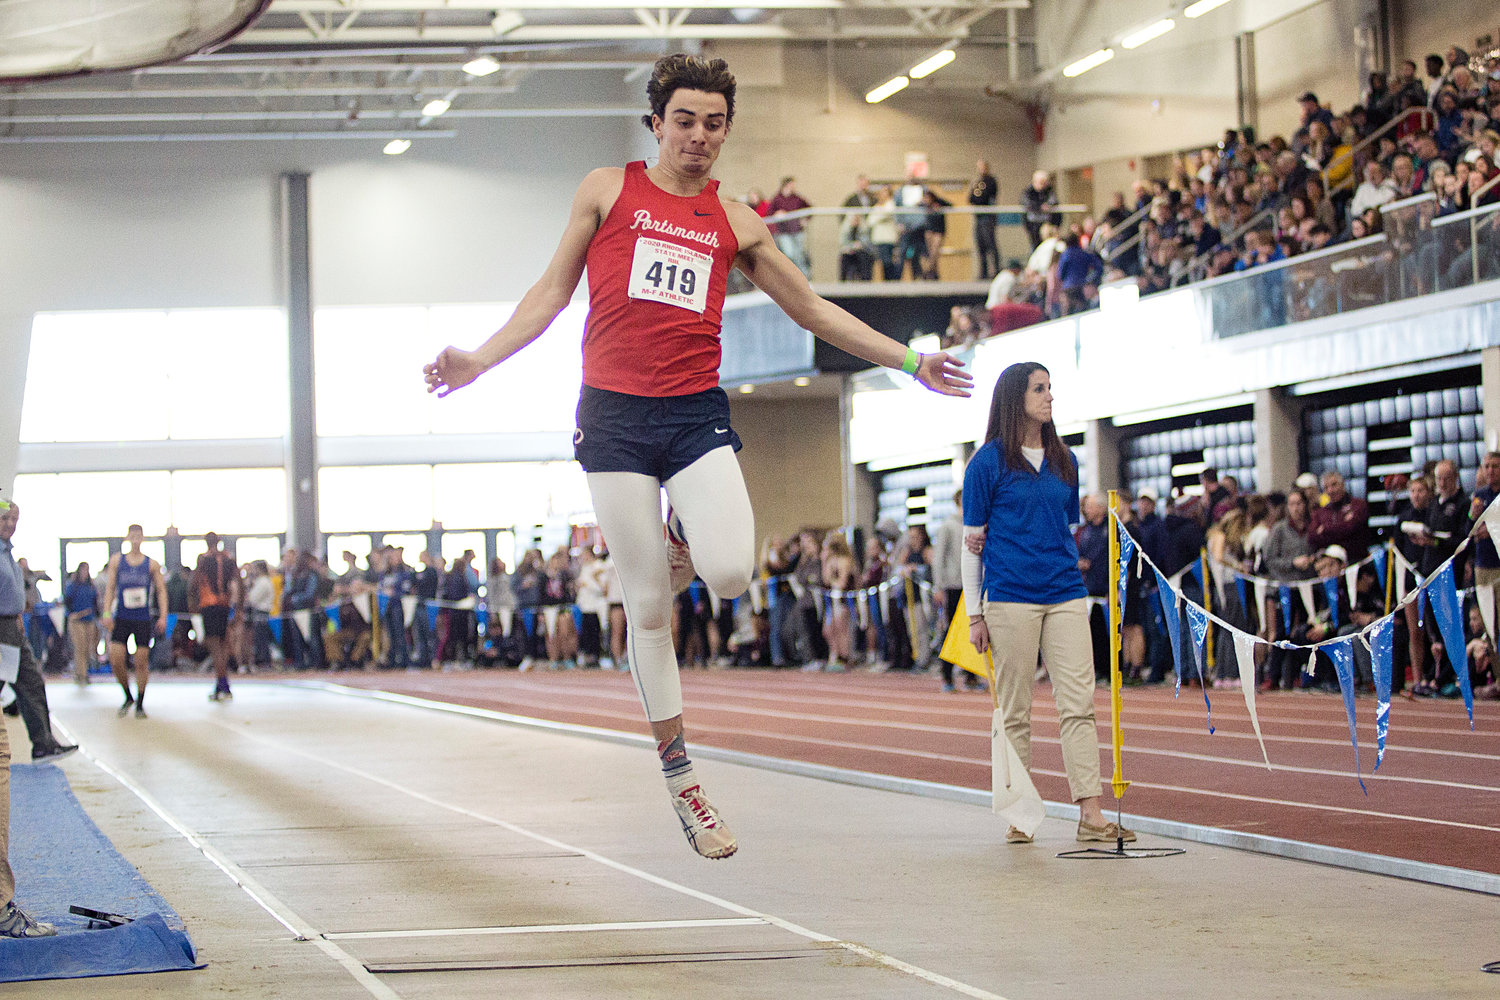 Brady Cranson propels himself while competing in the boys' long jump 